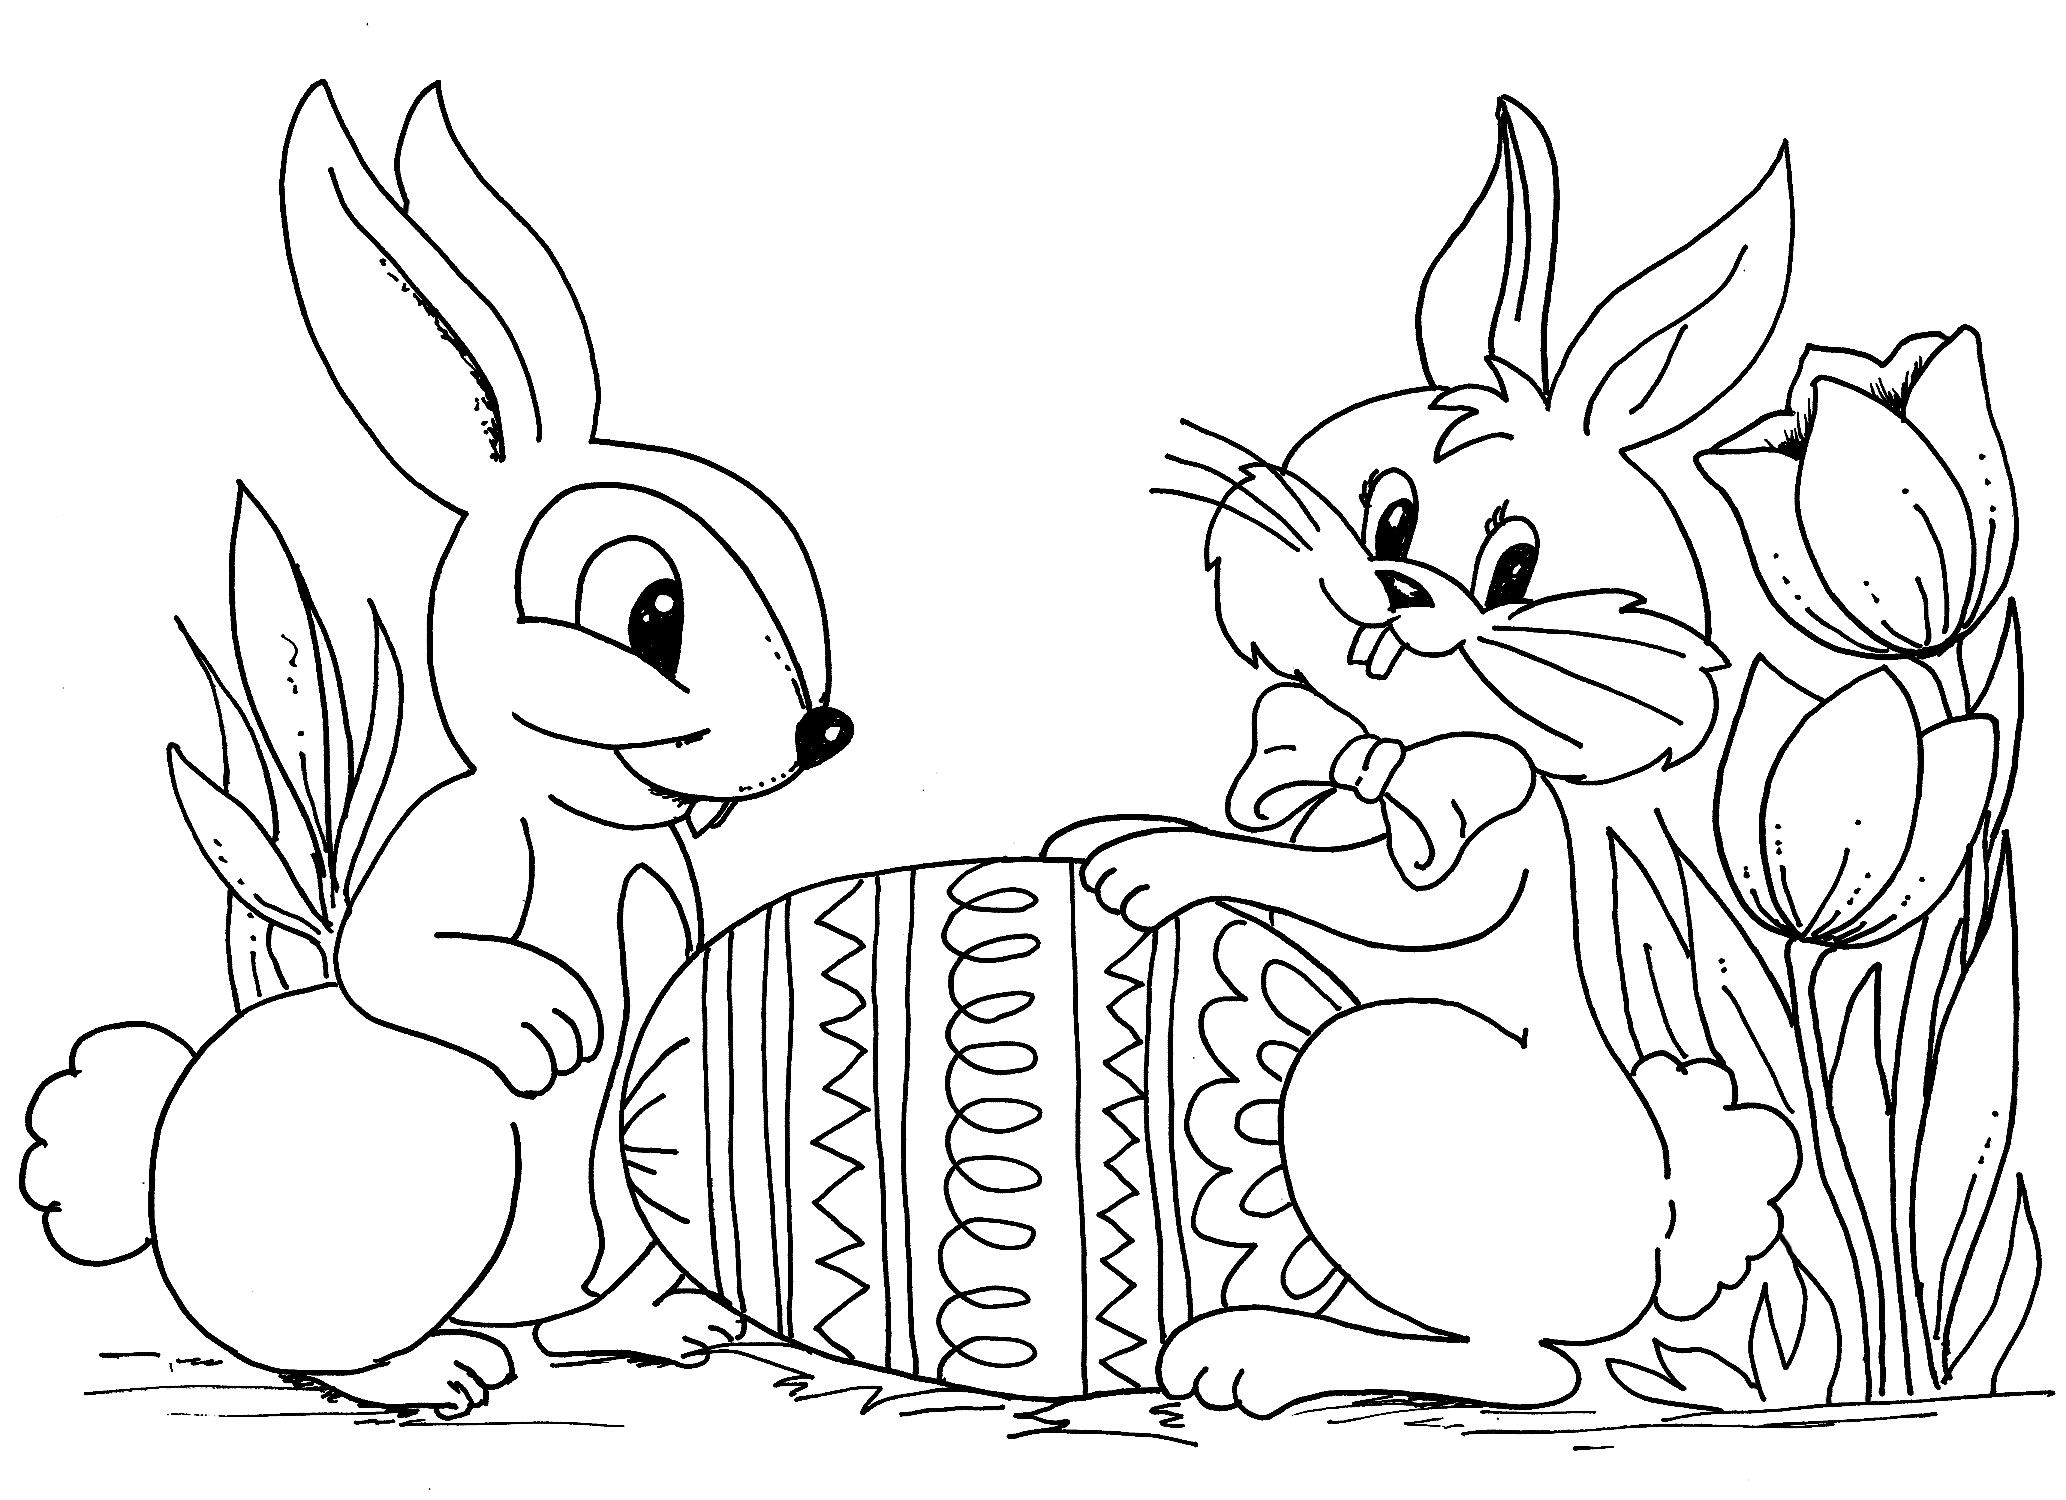 Happy Easter Coloring Pages 2018 | Easter Egg, Easter Bunny, Jesus ...